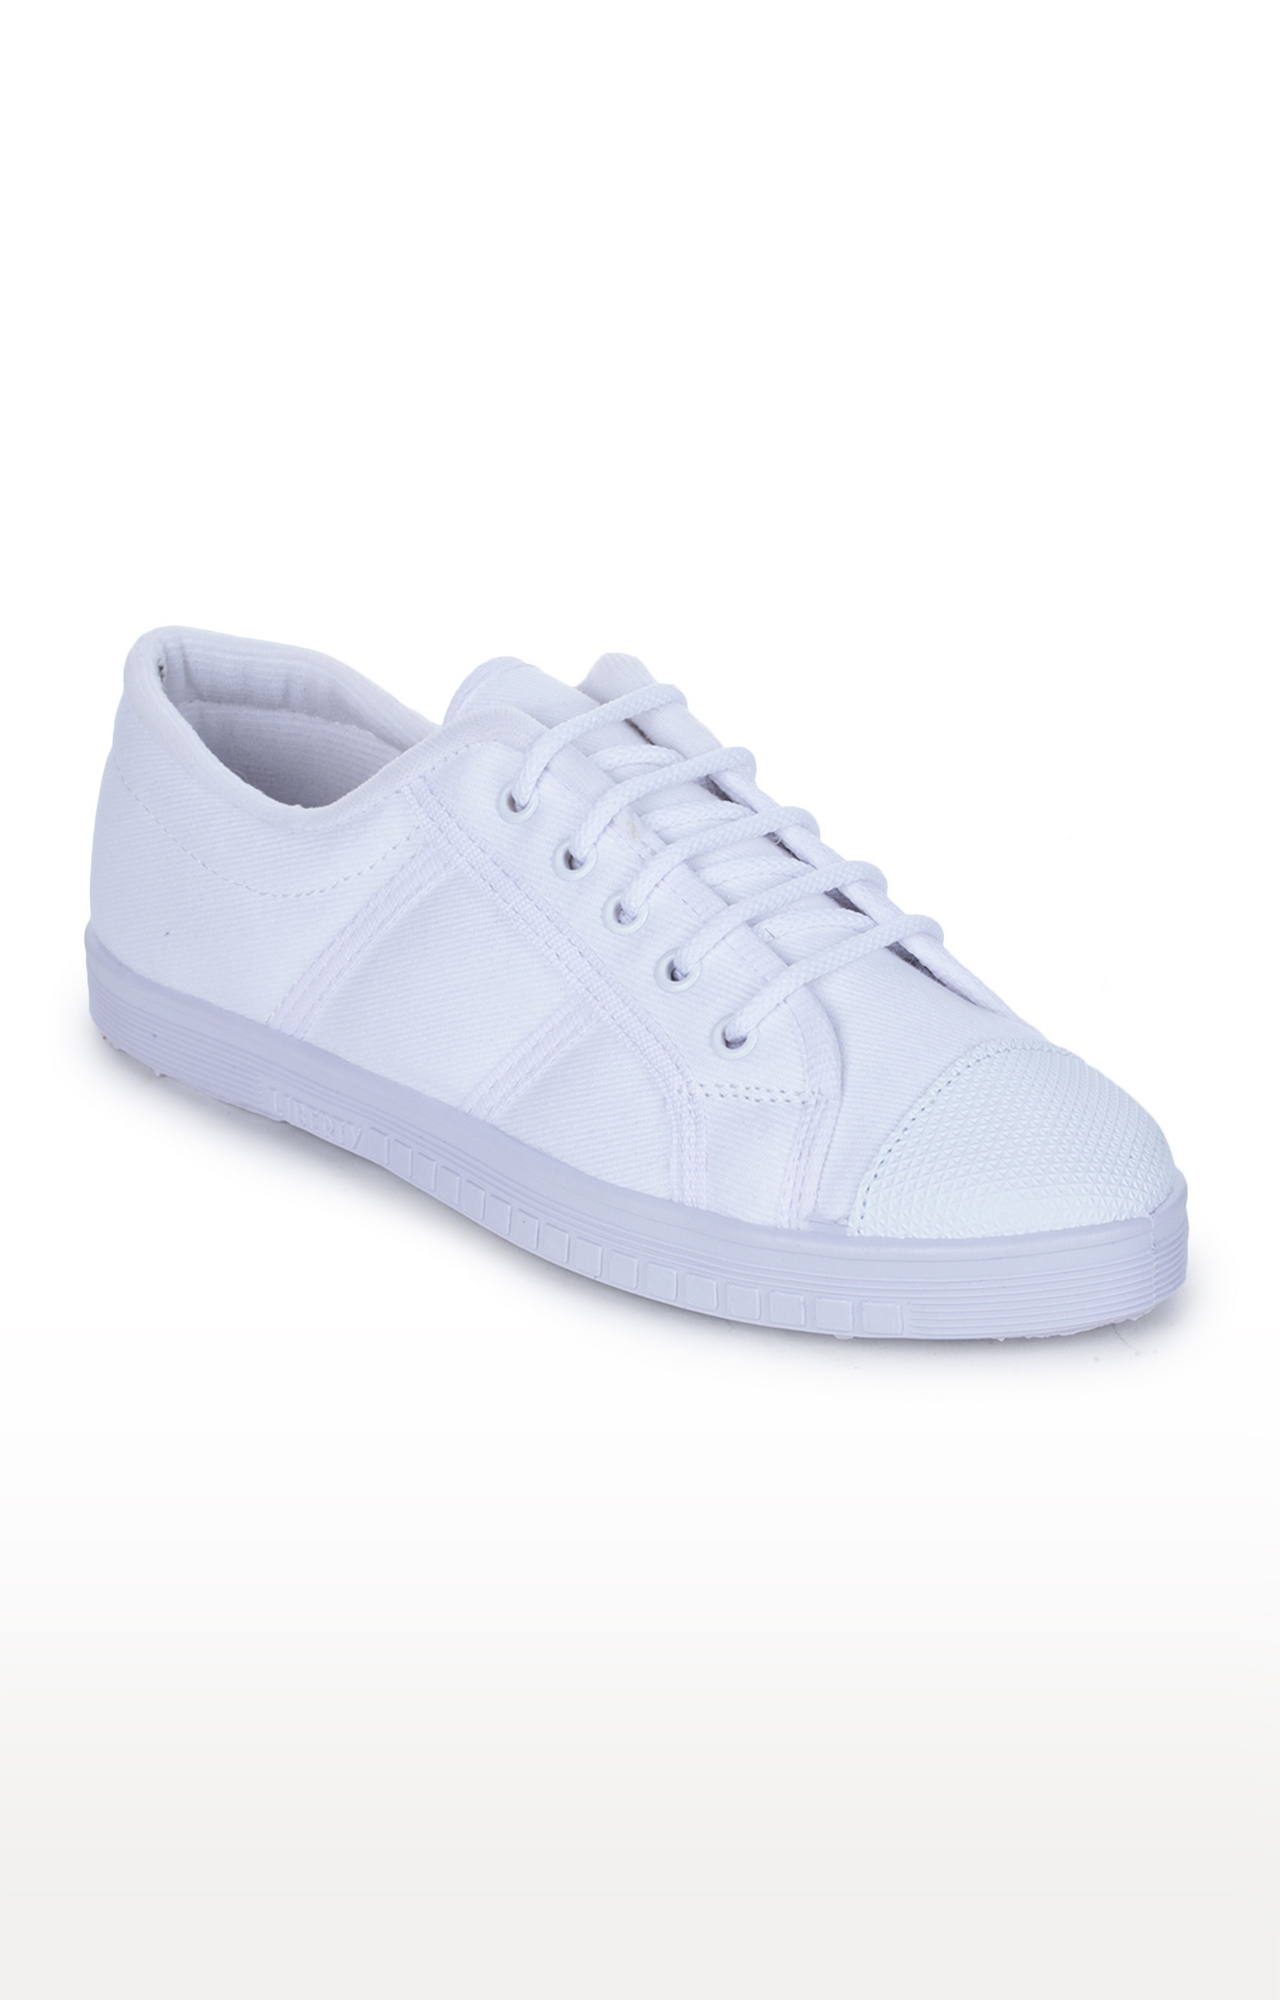 Liberty | Gliders by Liberty White Sneakers